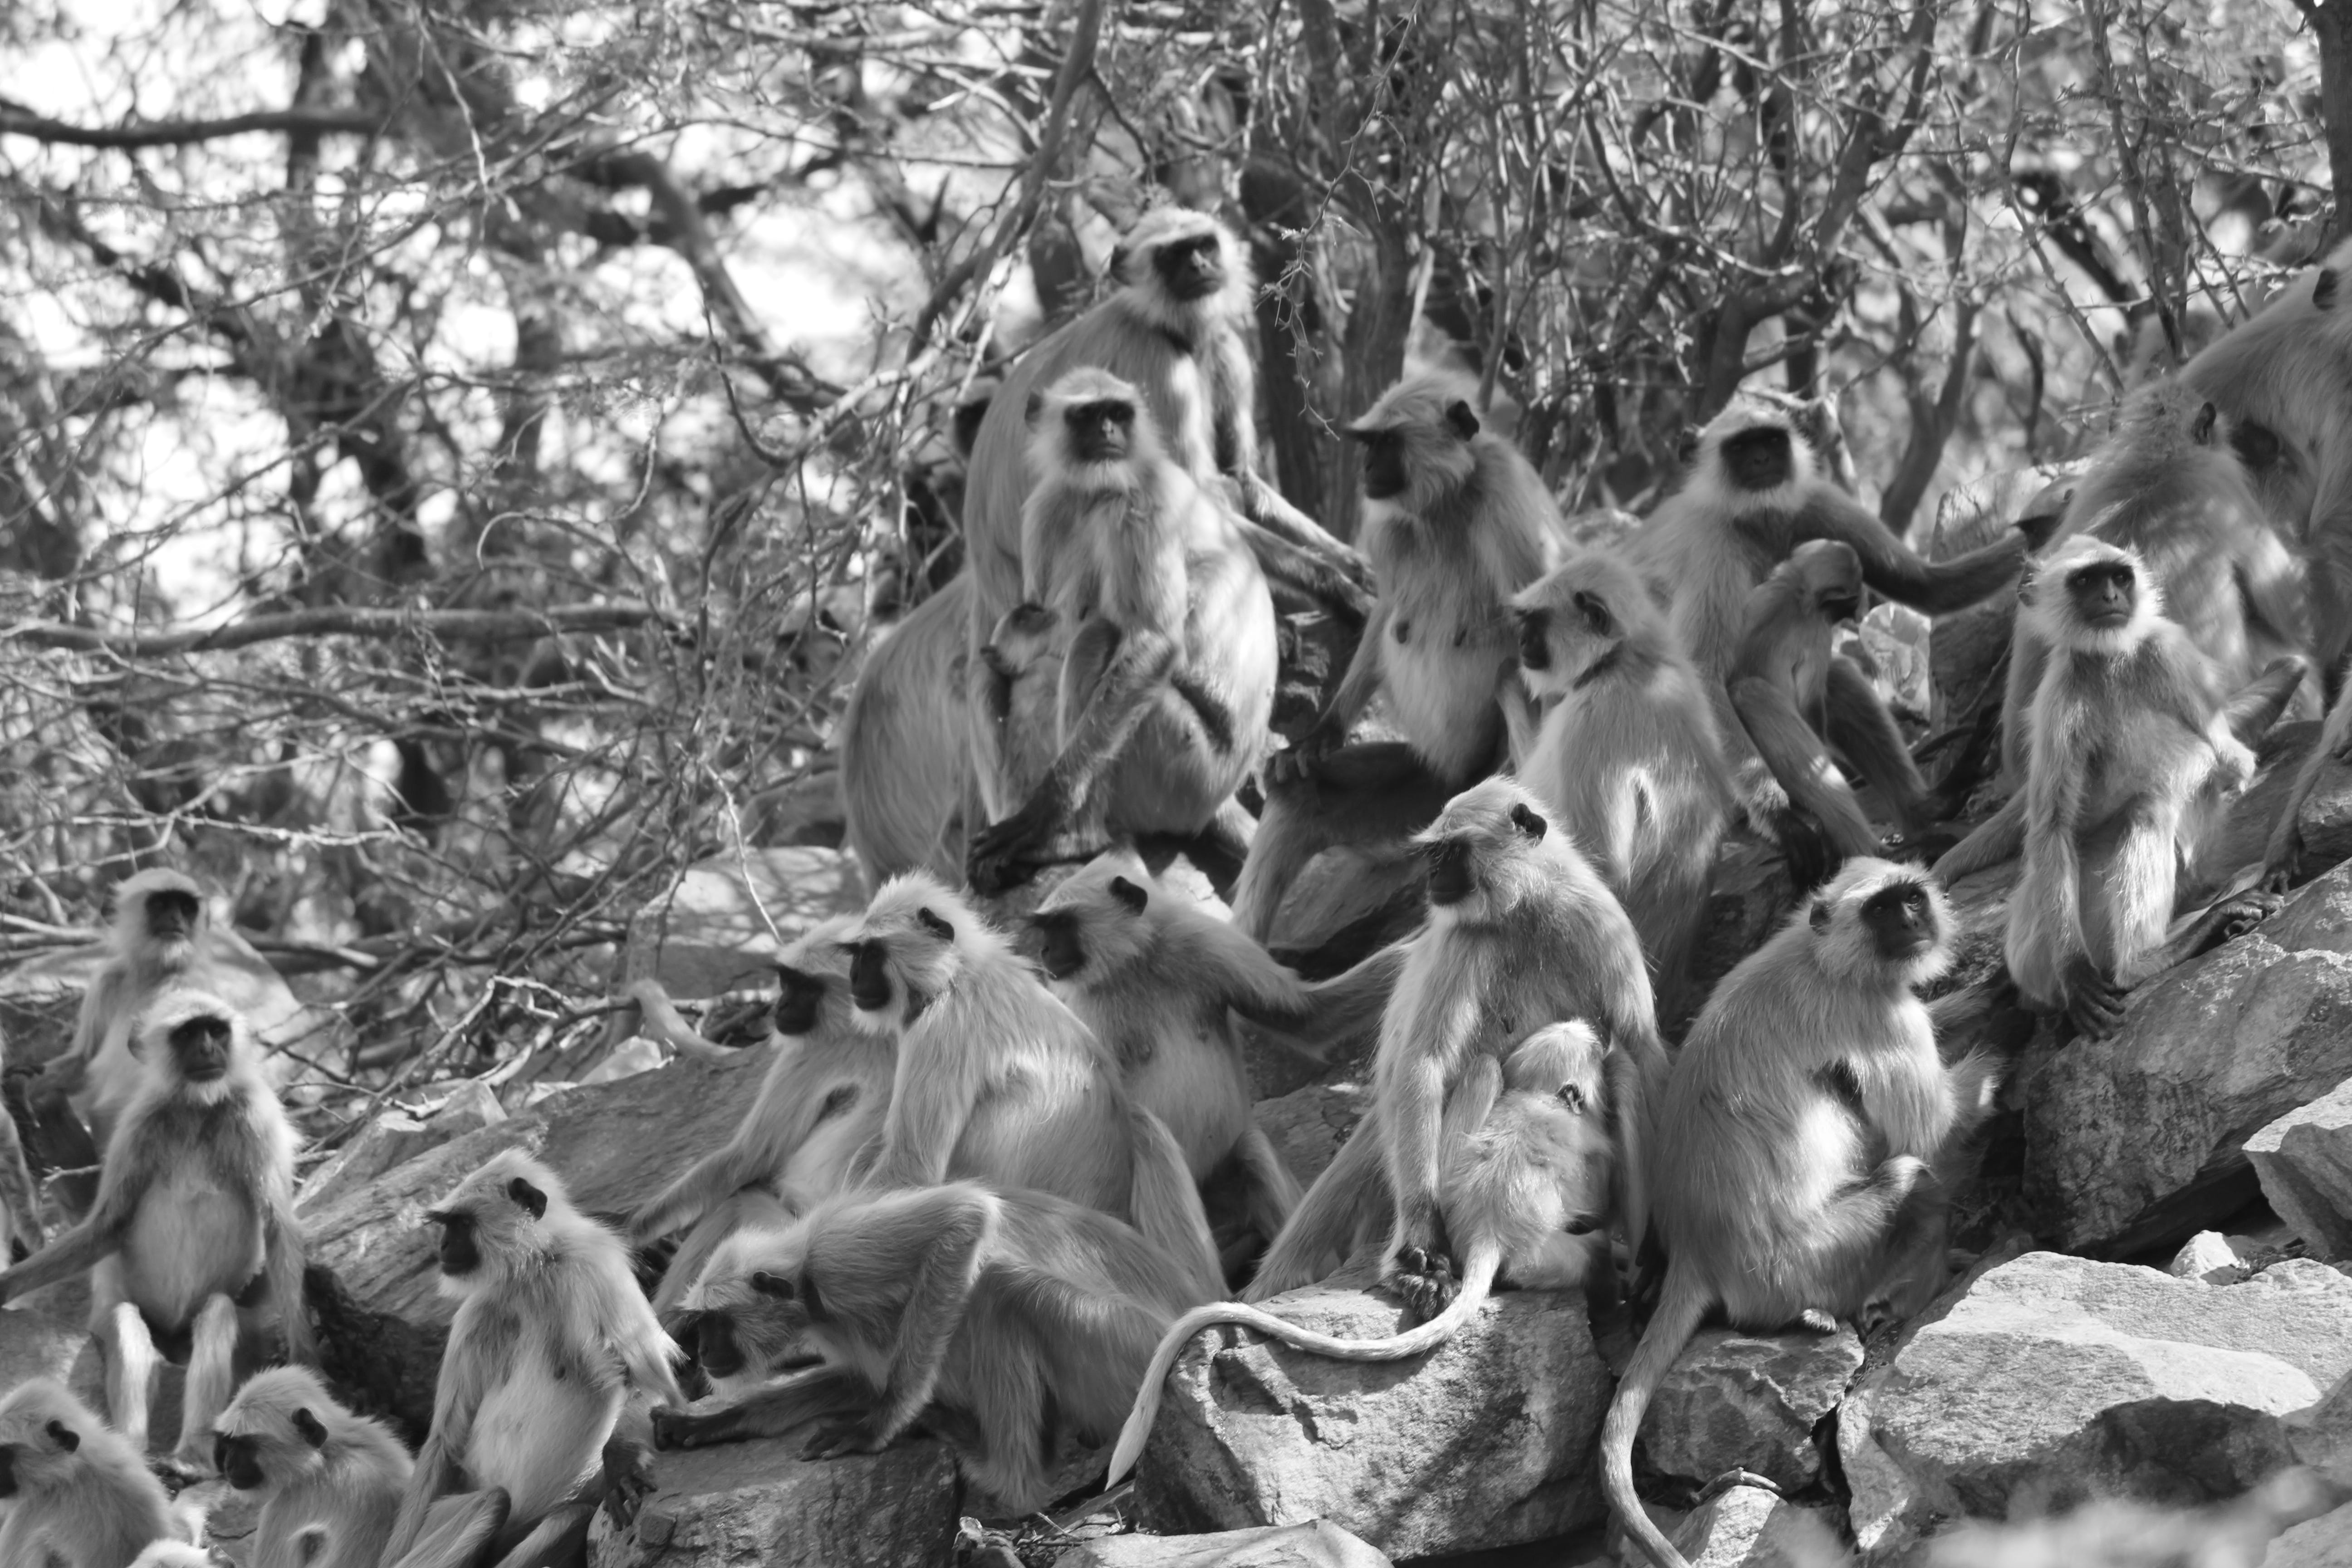 Grayscale Photo of Monkeys